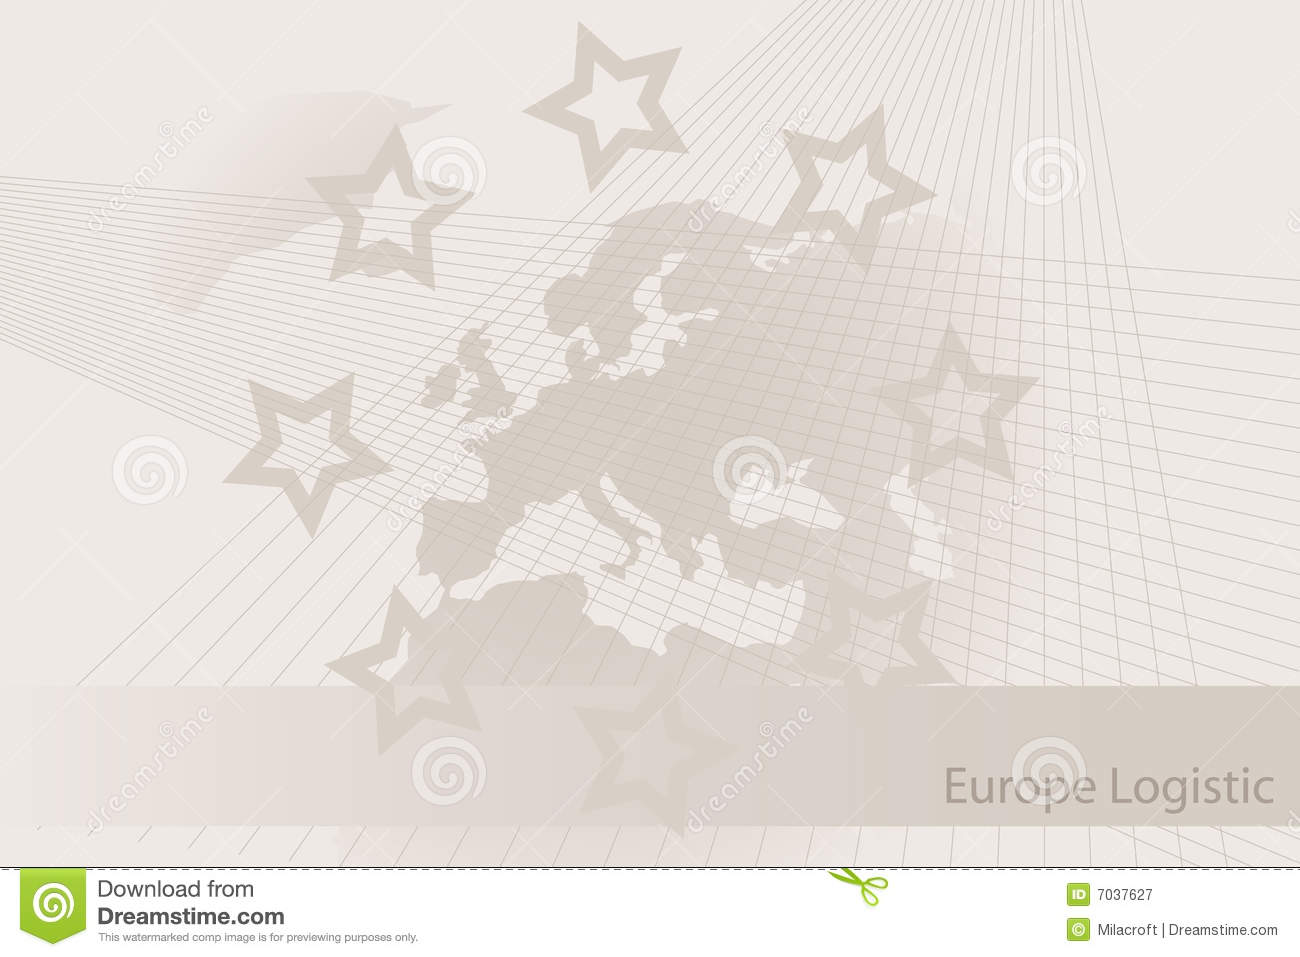 logistic europe brochure background stock vector illustration of